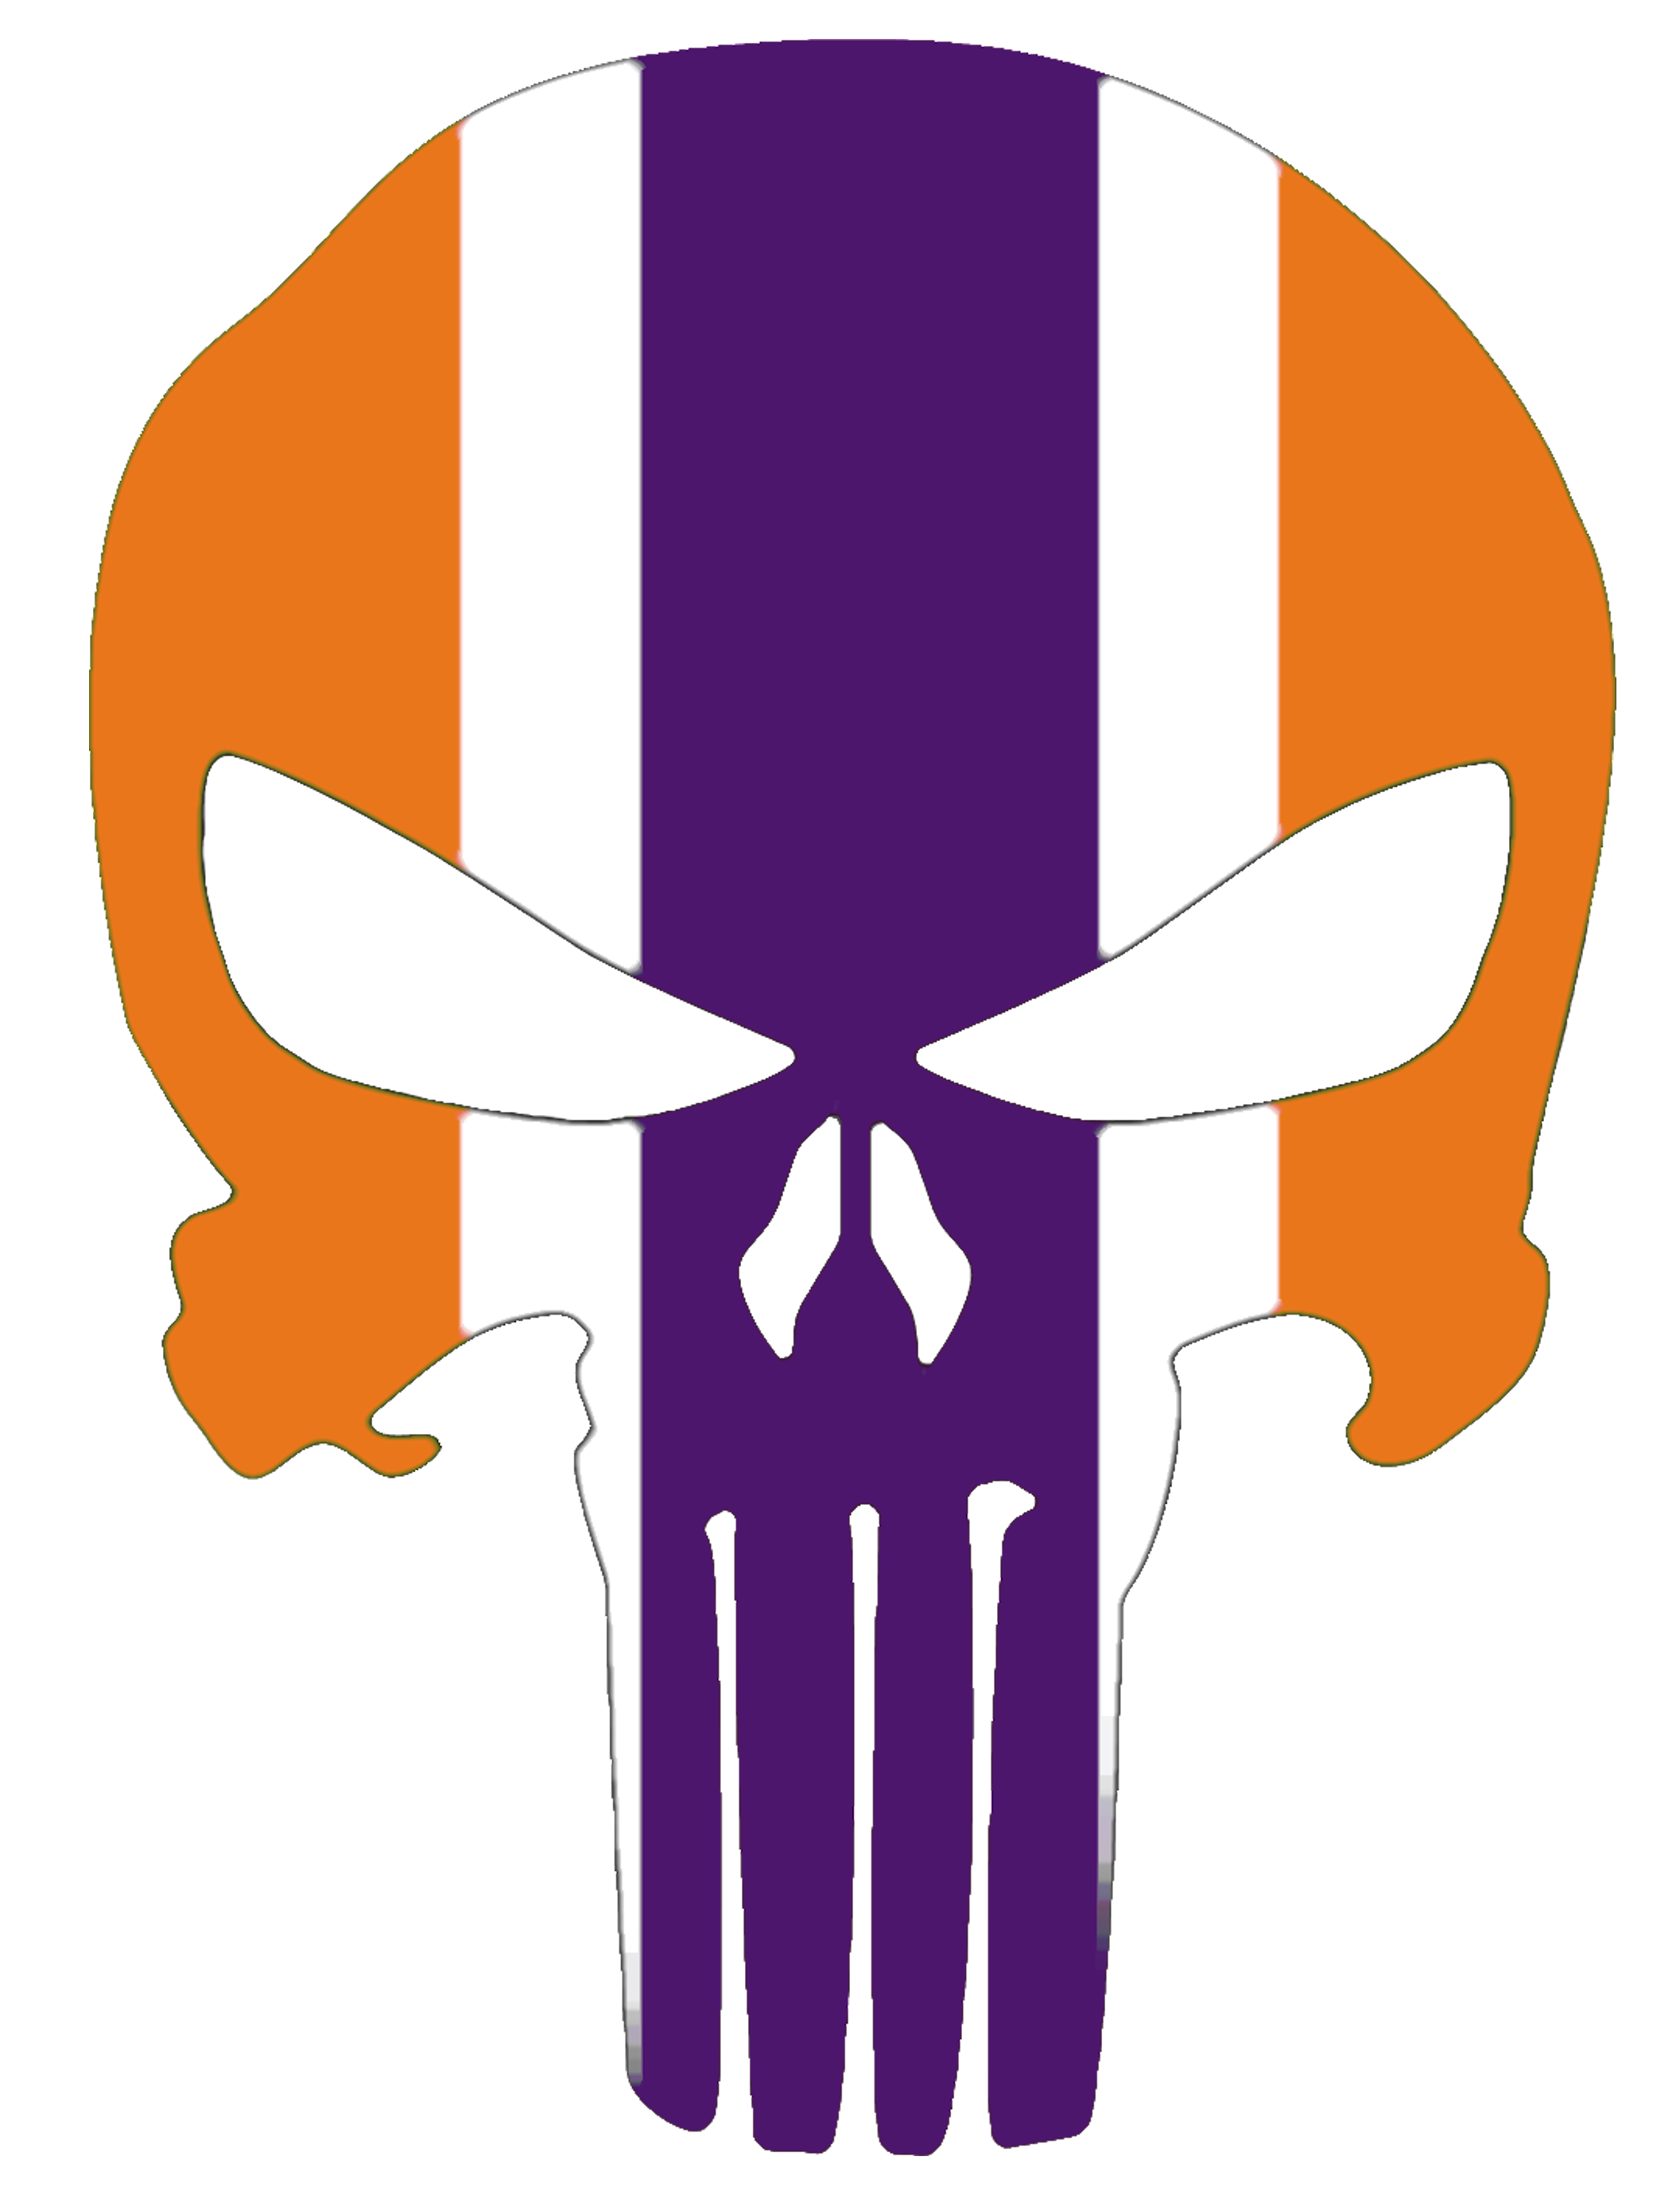 Sheep clipart skull. Clemson tigers free images